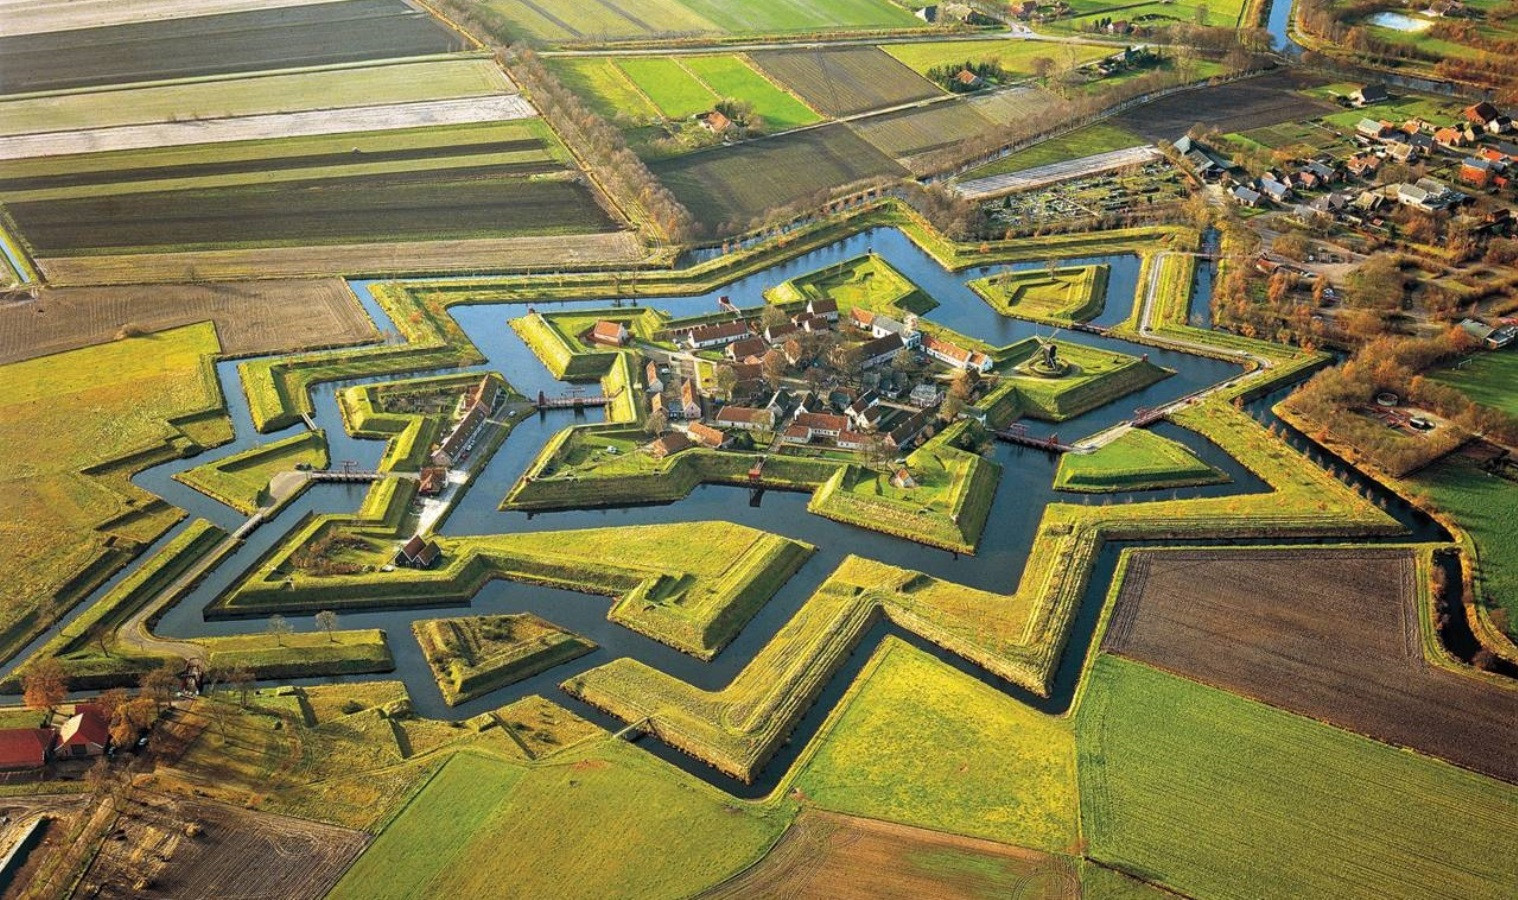 Castillo de Bourtange